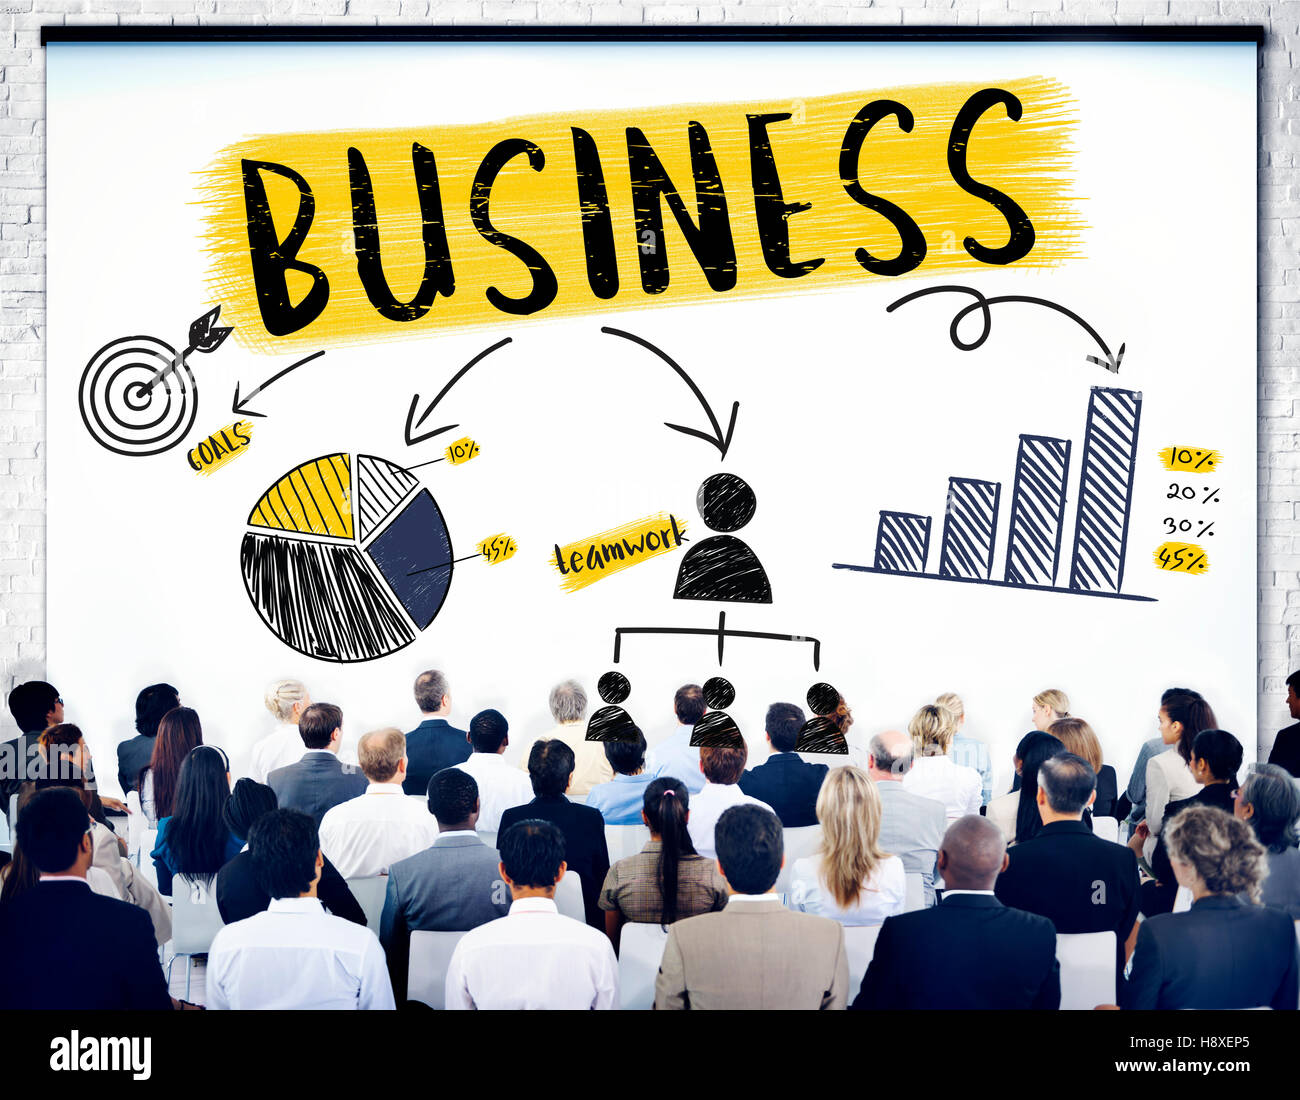 Business Growth Success Corporate Teamwork Concept - Stock Image